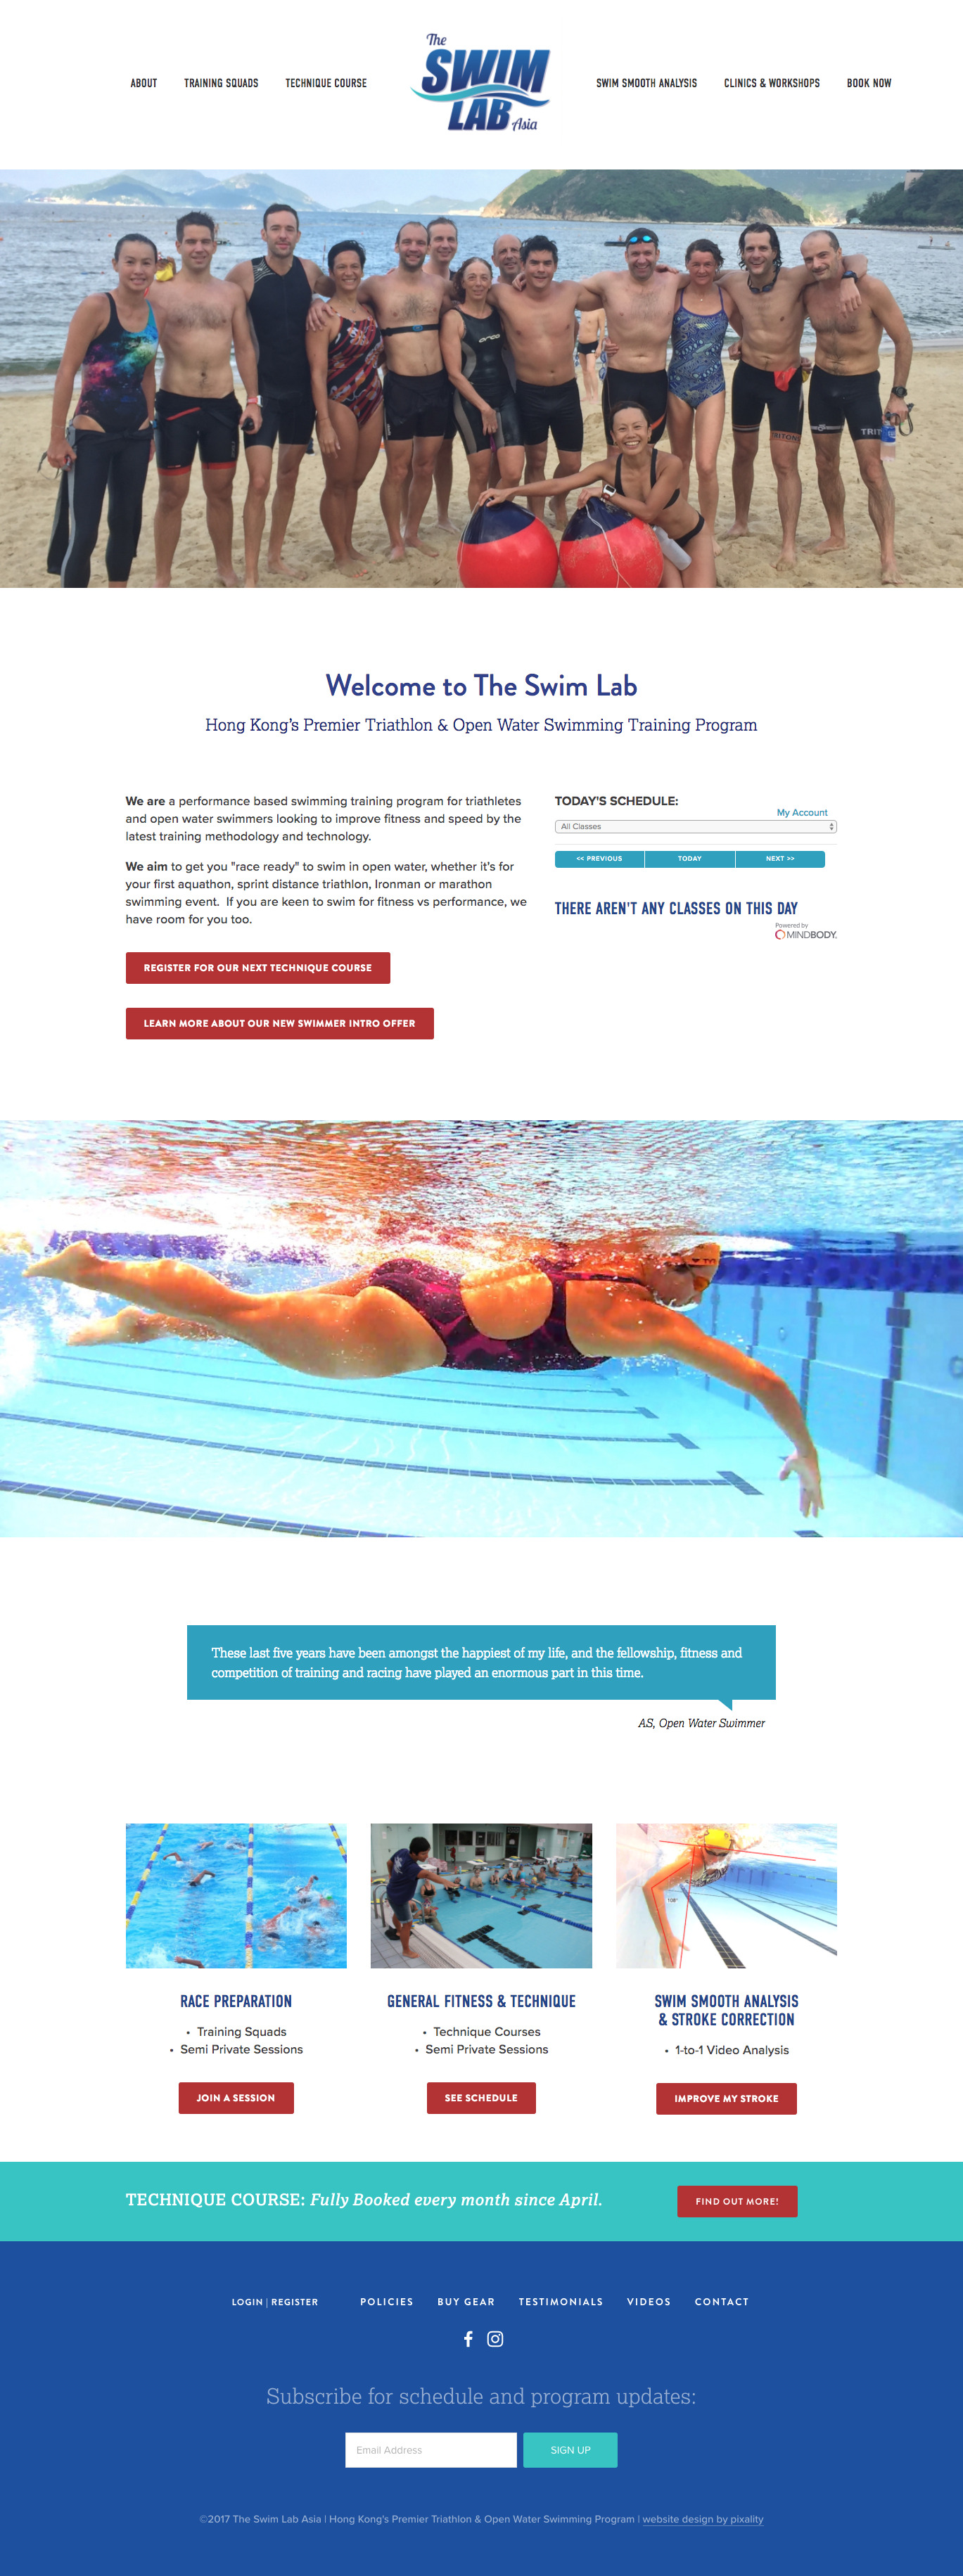 Squarespace home page design for The Swim Lab